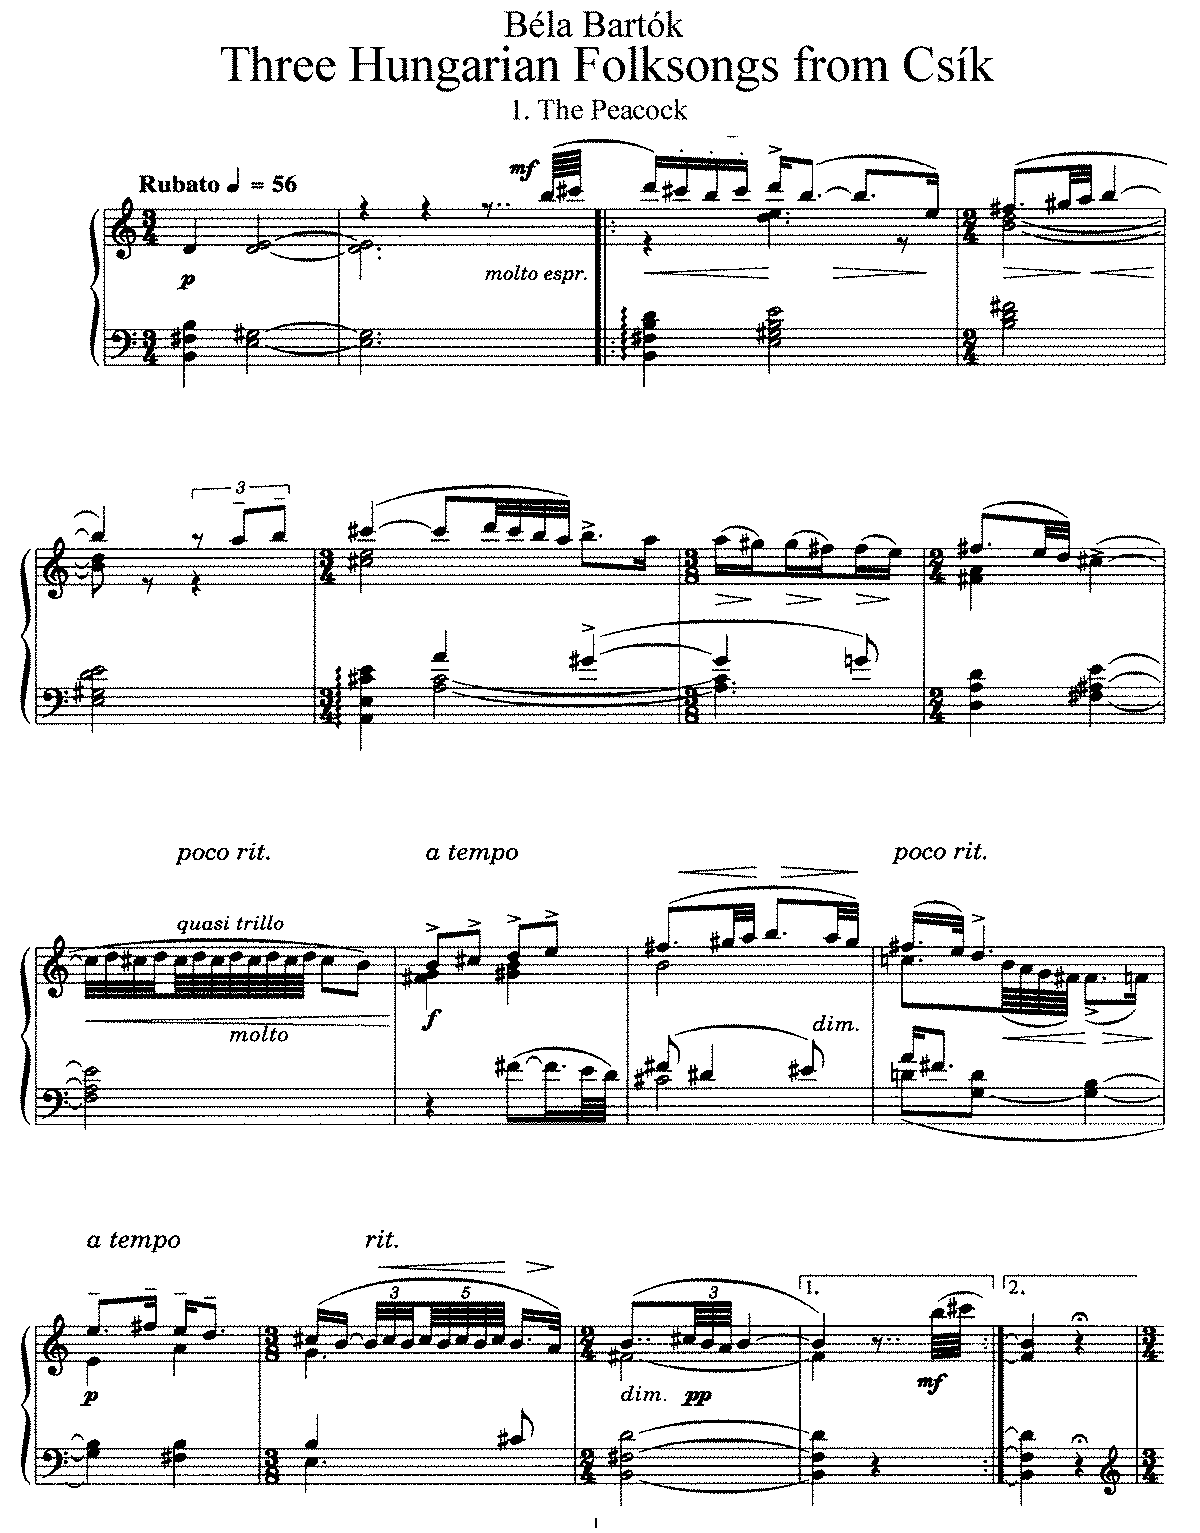 Bartok - Sz.35a - 3 Hungarian Folksongs from Csik.pdf